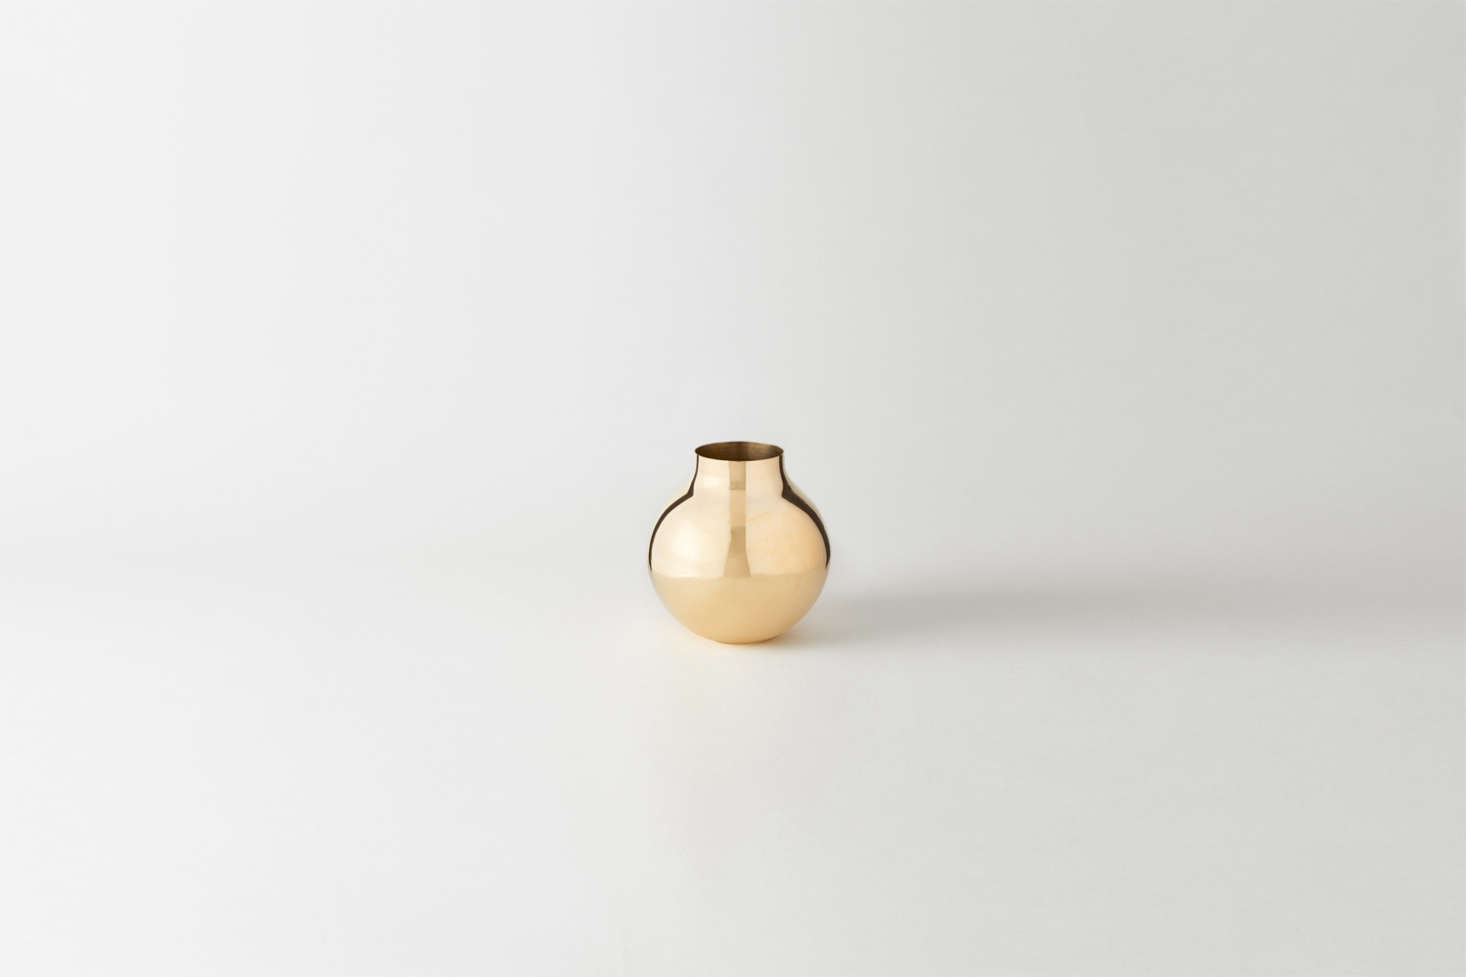 Made in Sweden, theSkultuna Brass Boule Vase is $5 at March.